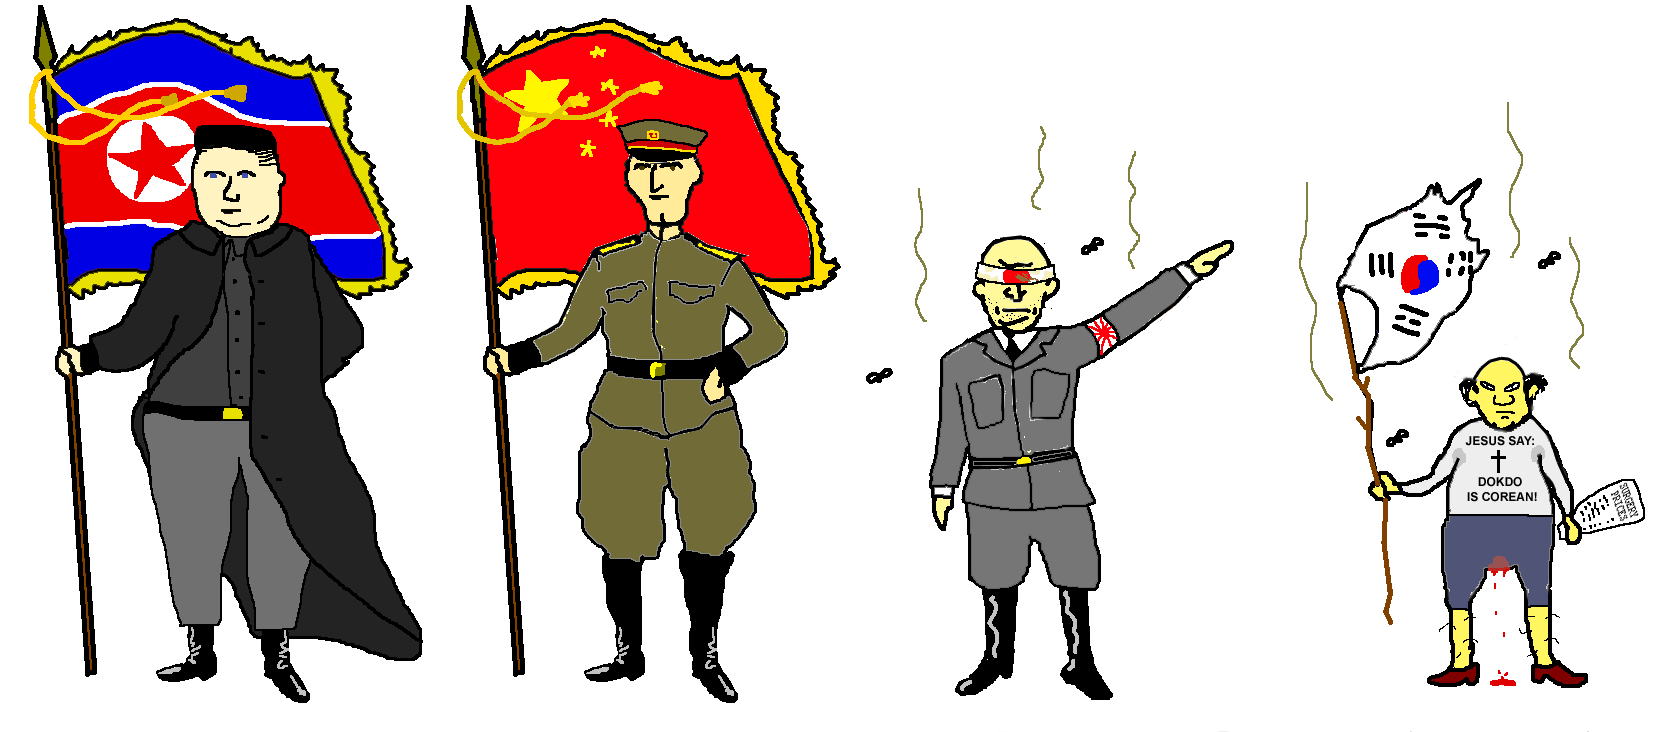 East Asia 4chan Flag Bearers Know Your Meme